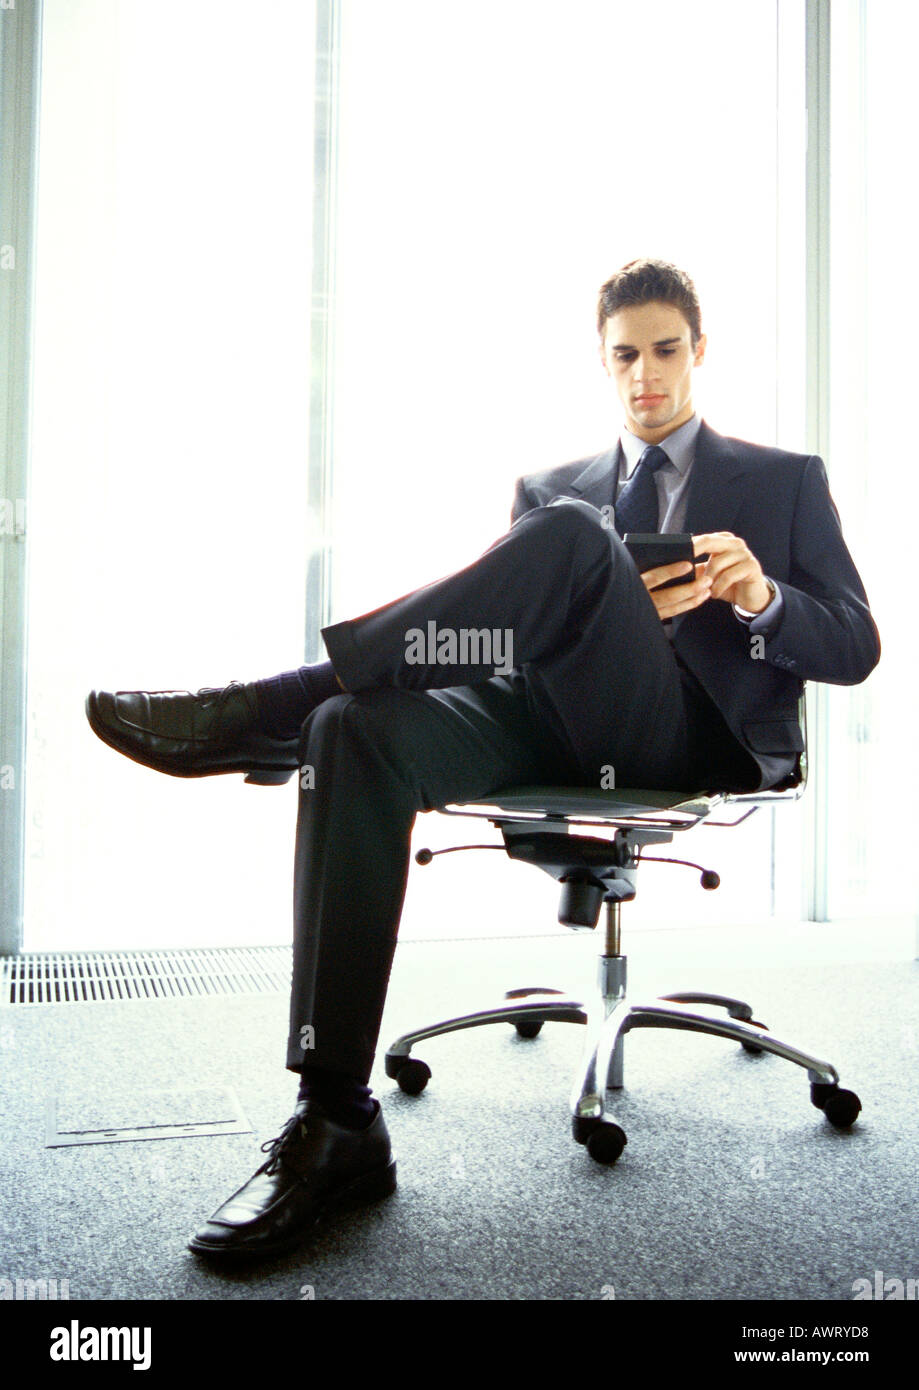 Businessman sitting in chair - Stock Image